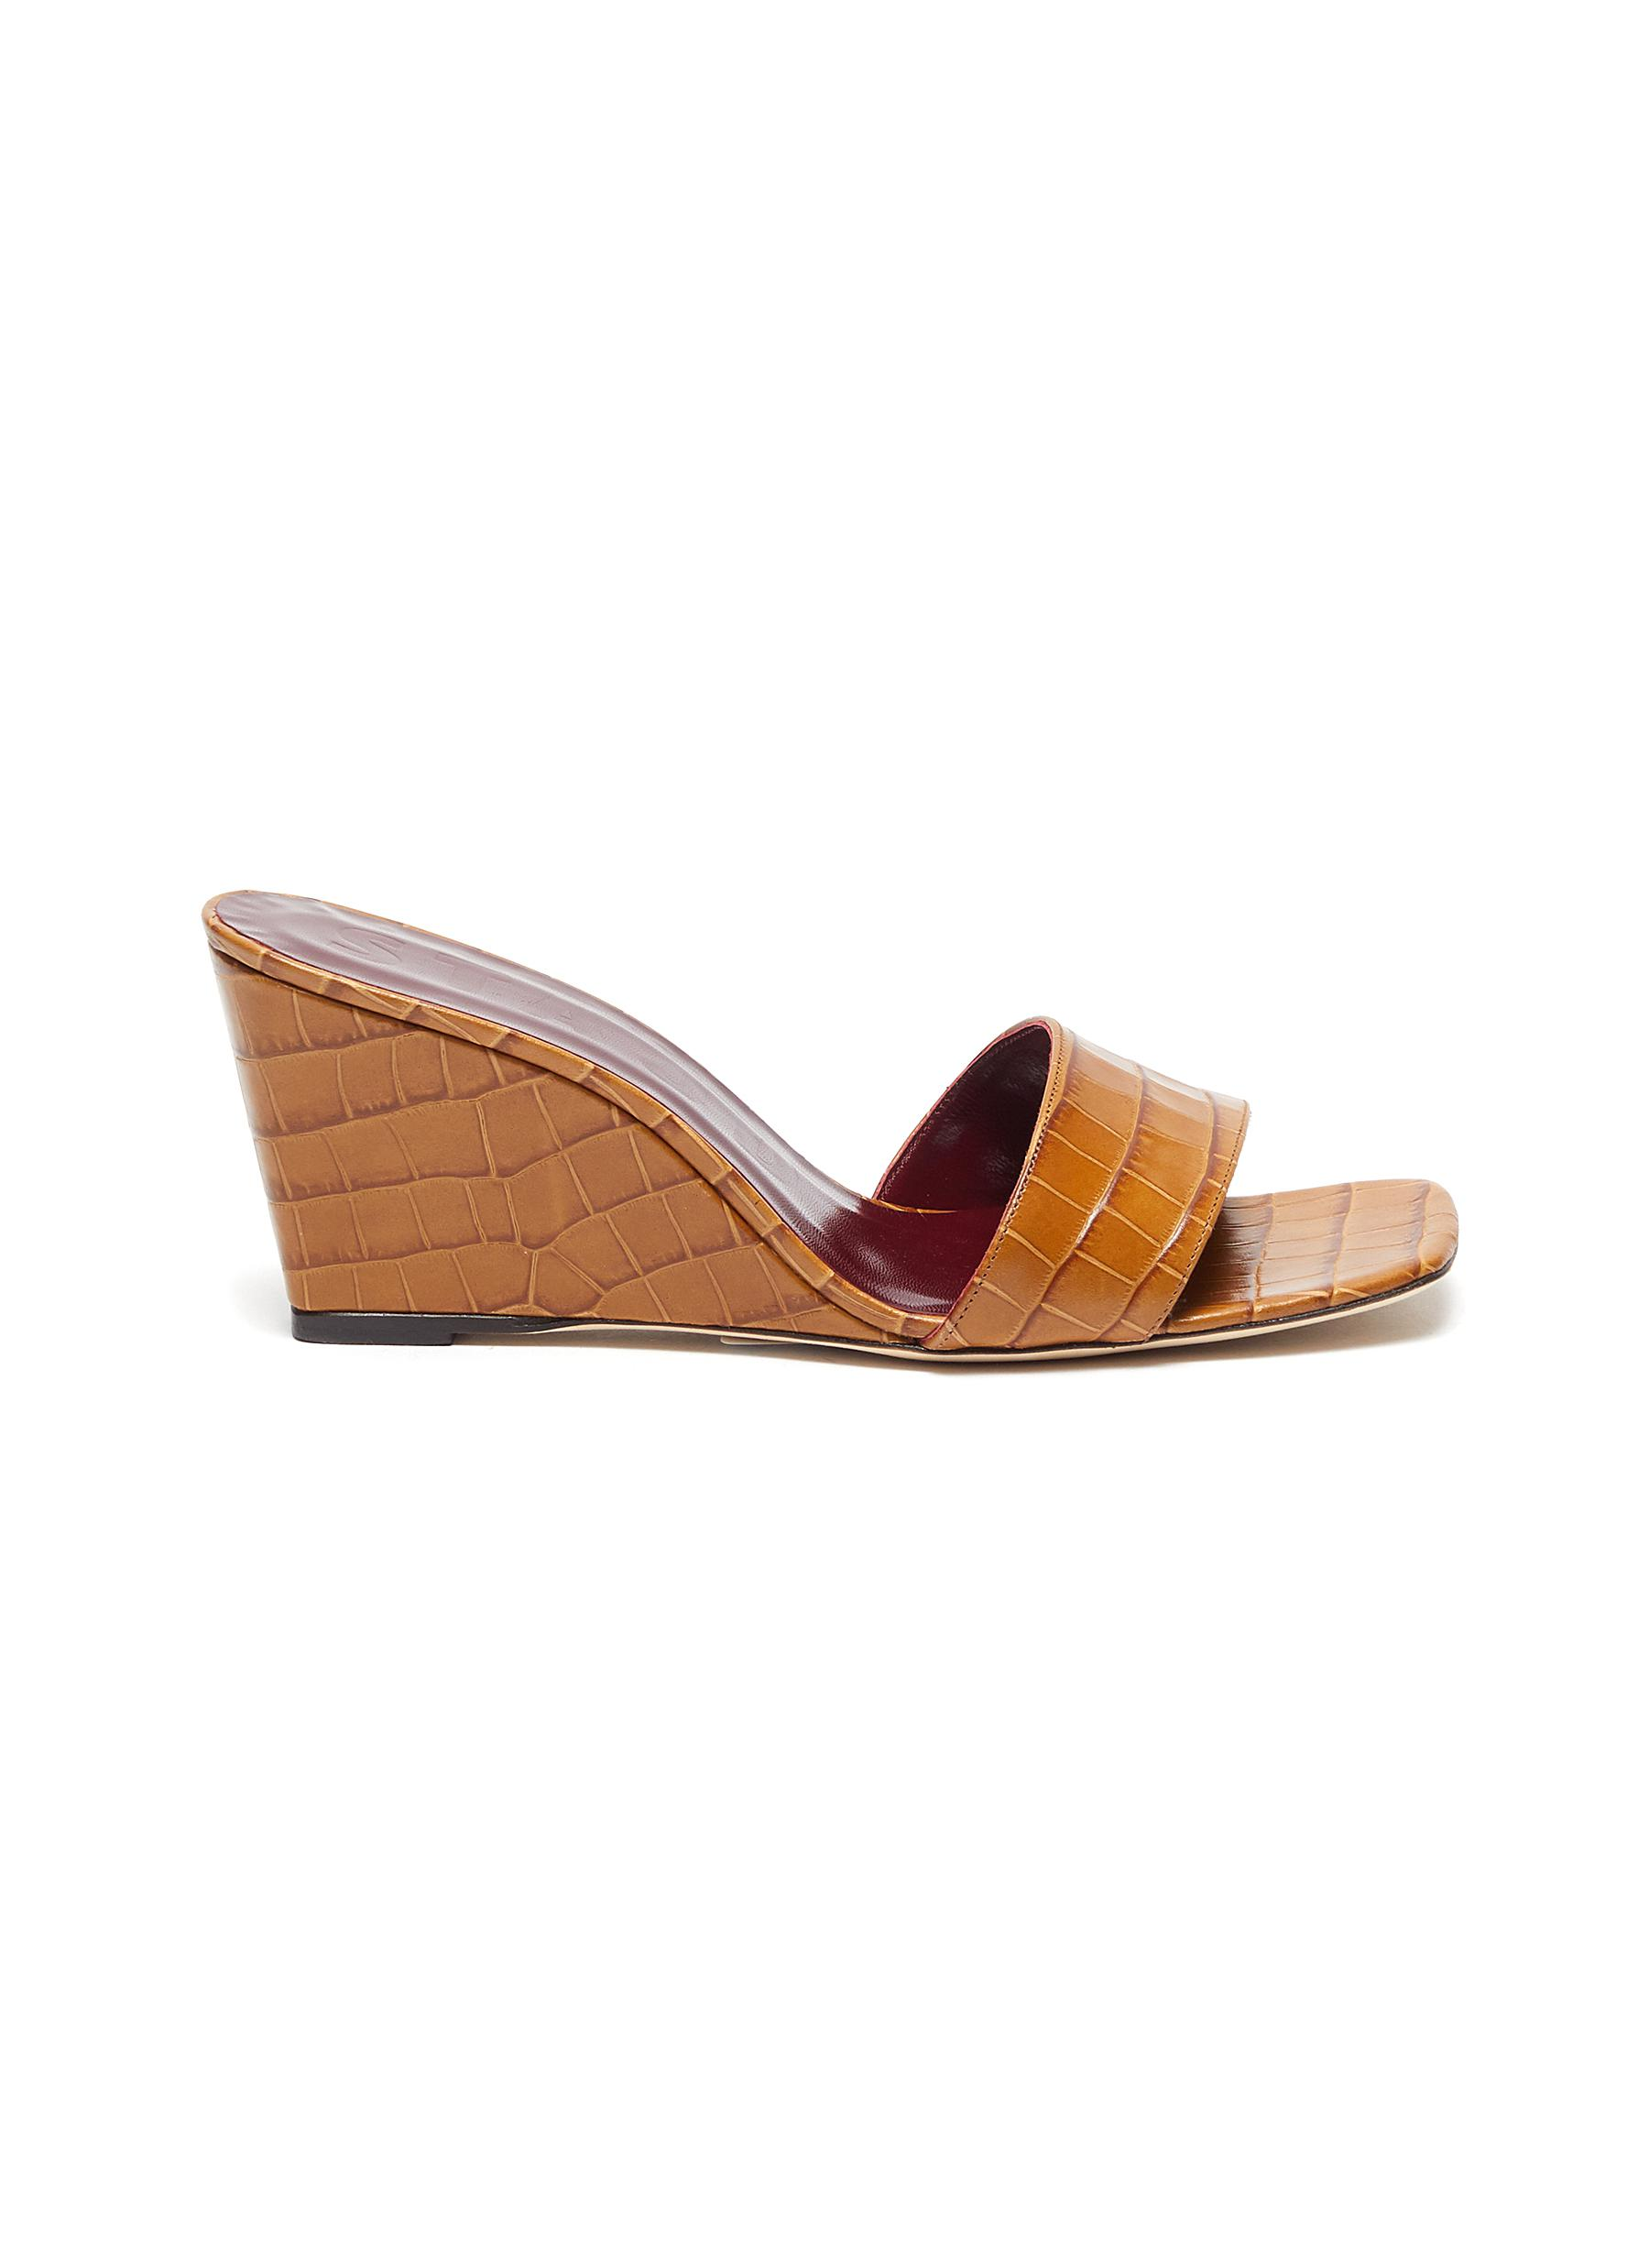 shop Staud 'Billie' croc embossed leather wedge sandals online